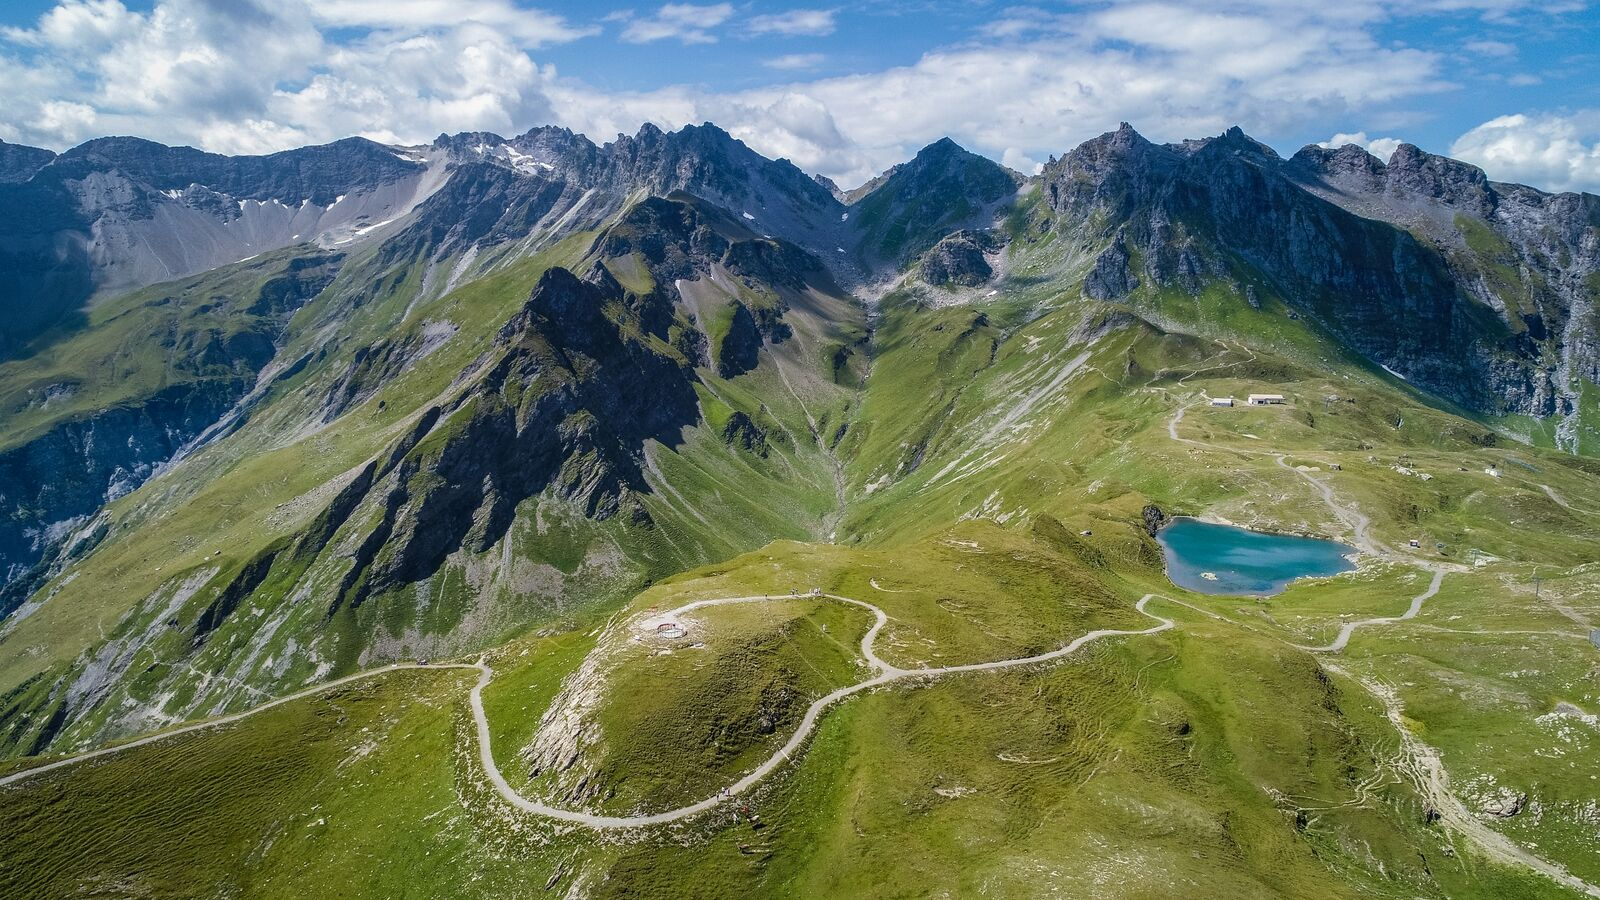 The Pizol Panorama High Trail offers a gigantic panorama of the Alps with a view of the Tectonic Arena Sardona UNESCO World Heritage Site.